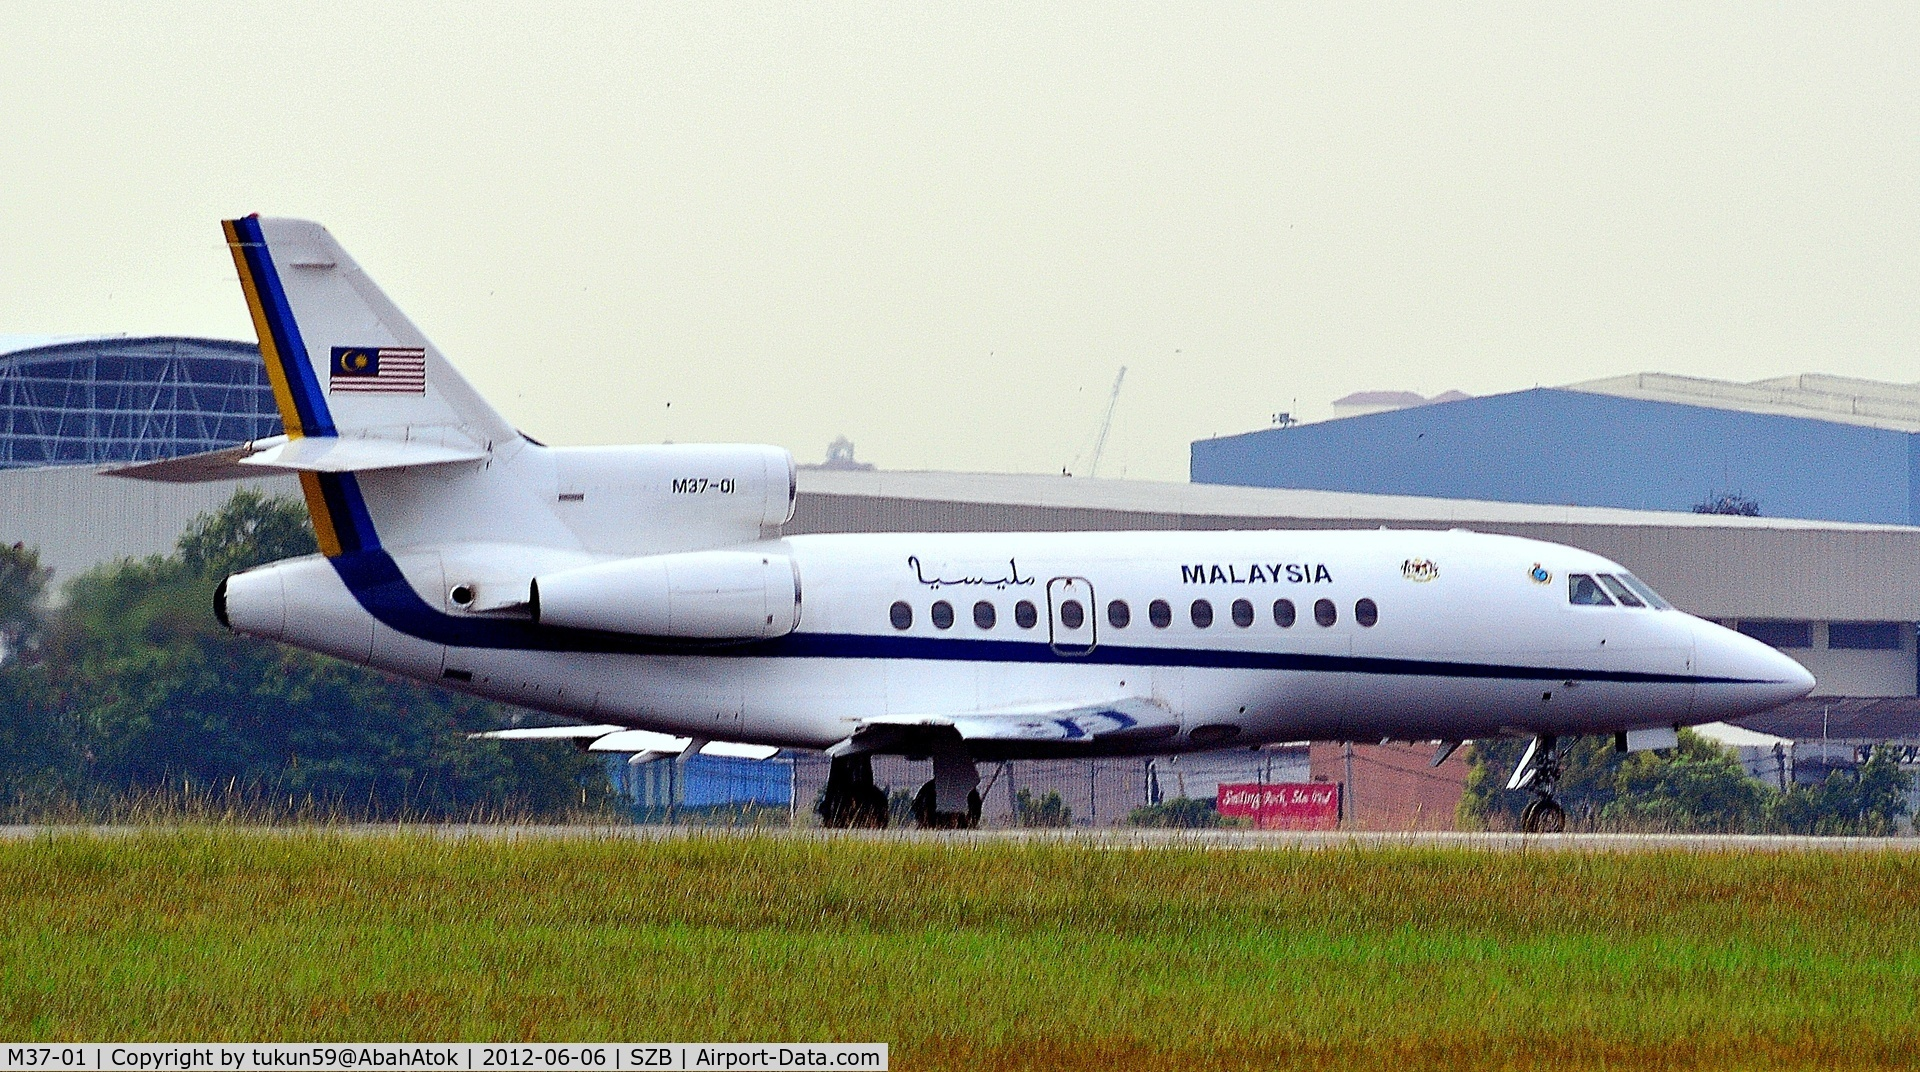 M37-01, 1989 Dassault 900 C/N 64, Royal Malaysian Air Force